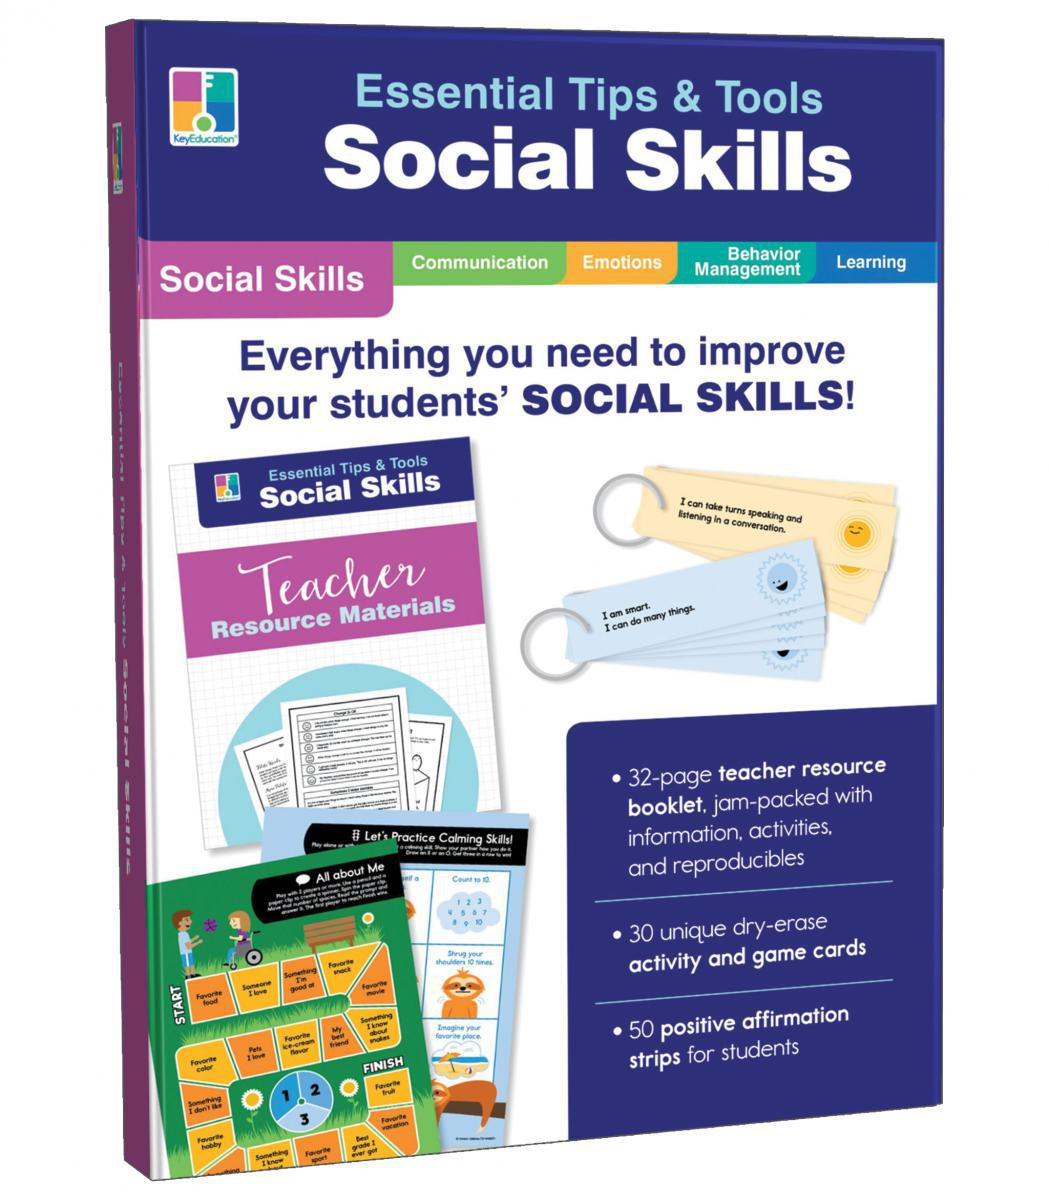 Essential Tips & Tools: Social Skills